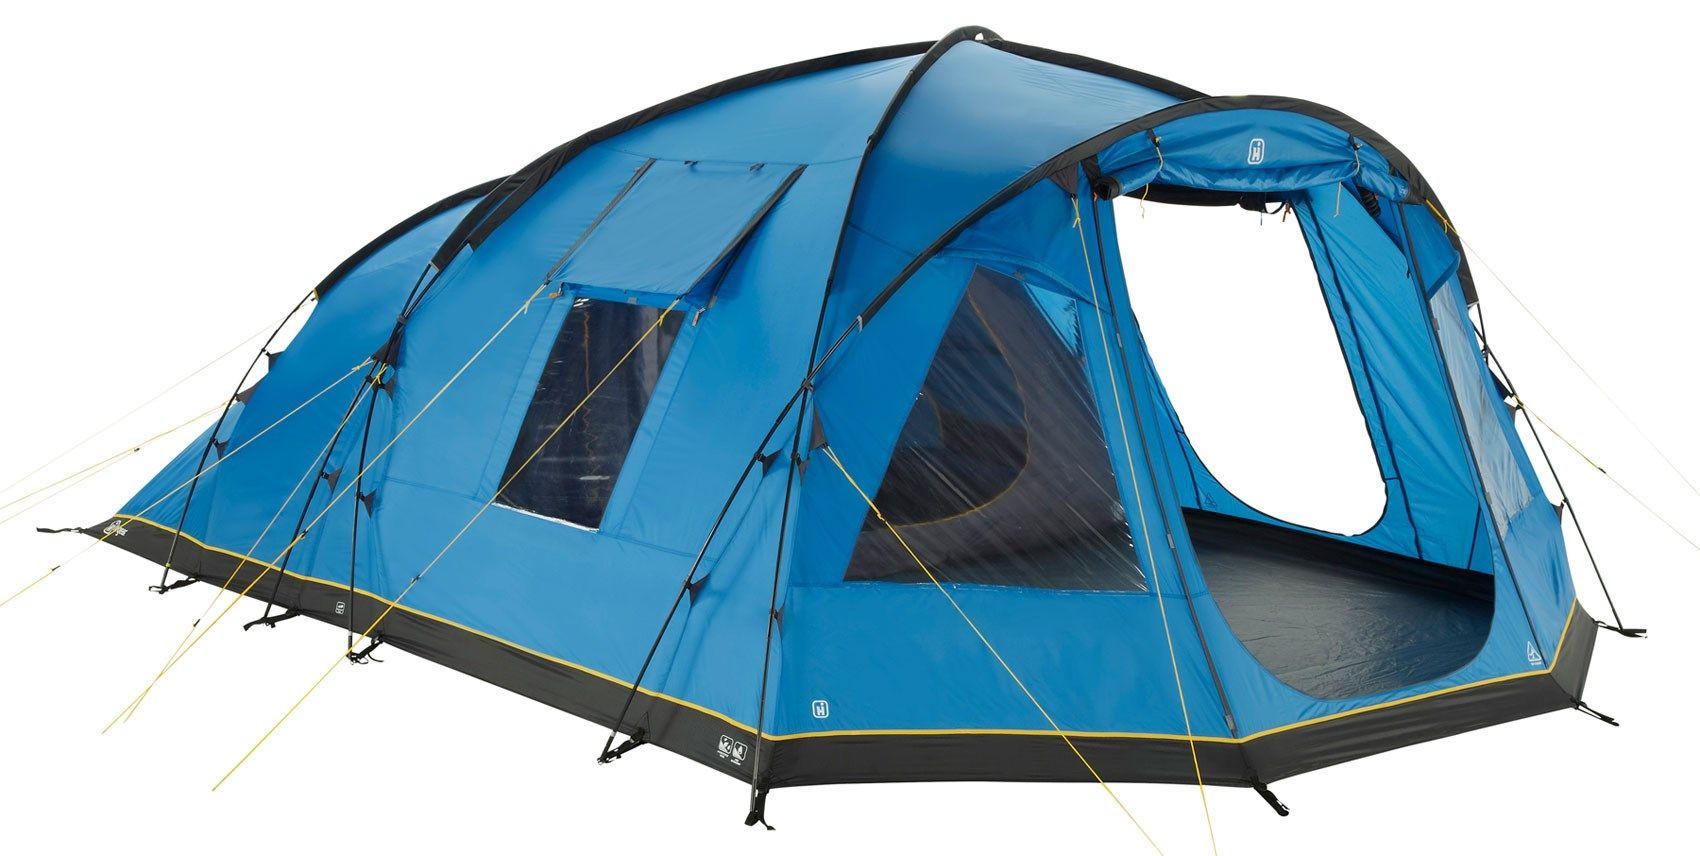 sports shoes e8a23 75ddf Hi Gear Voyager Eclipse 6 Person Tent | GO Outdoors ...